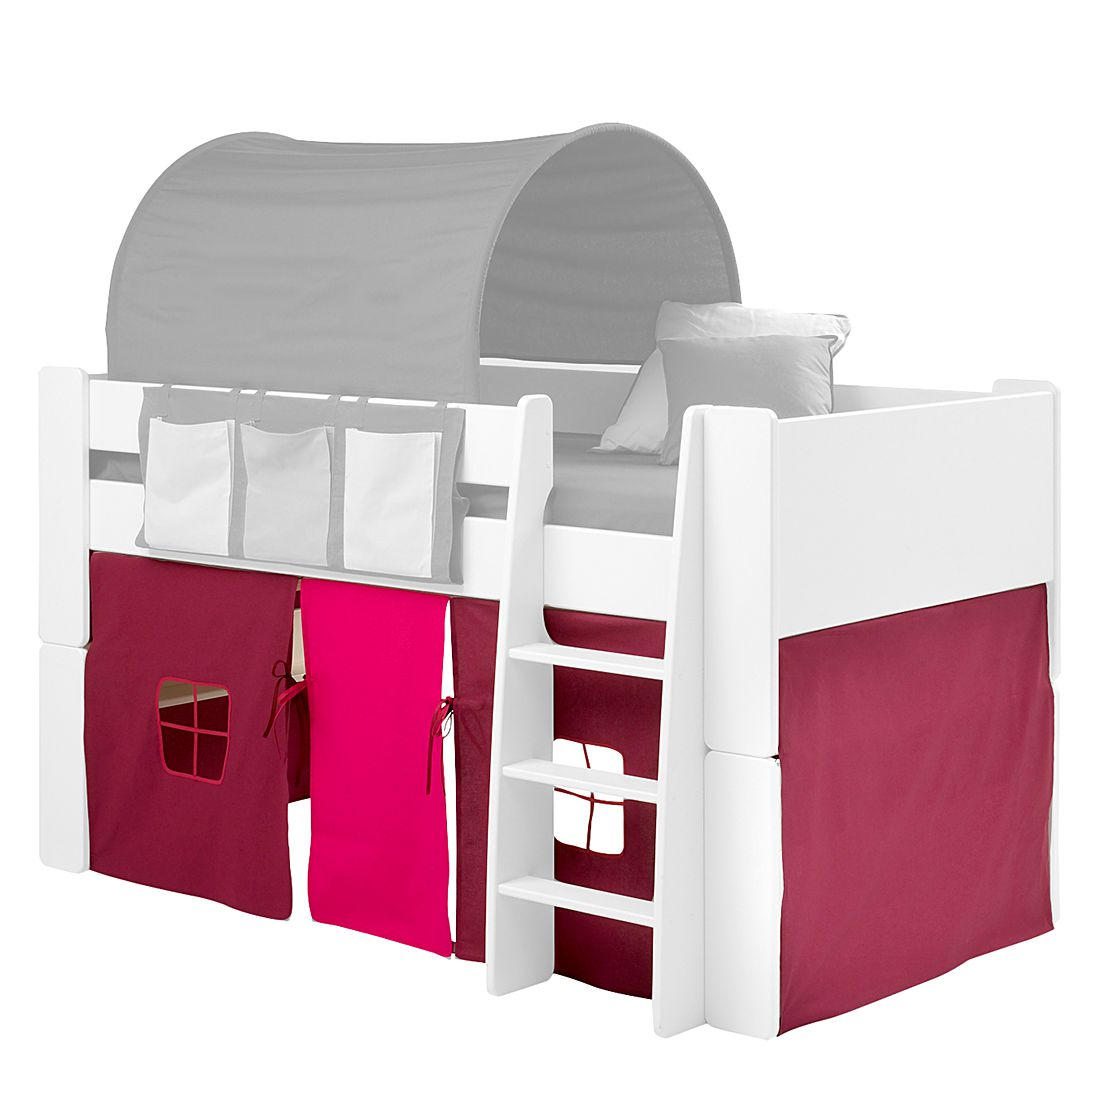 Set di accessori letto per bambini Steens for Kids - Purpora/Rosa, Steens